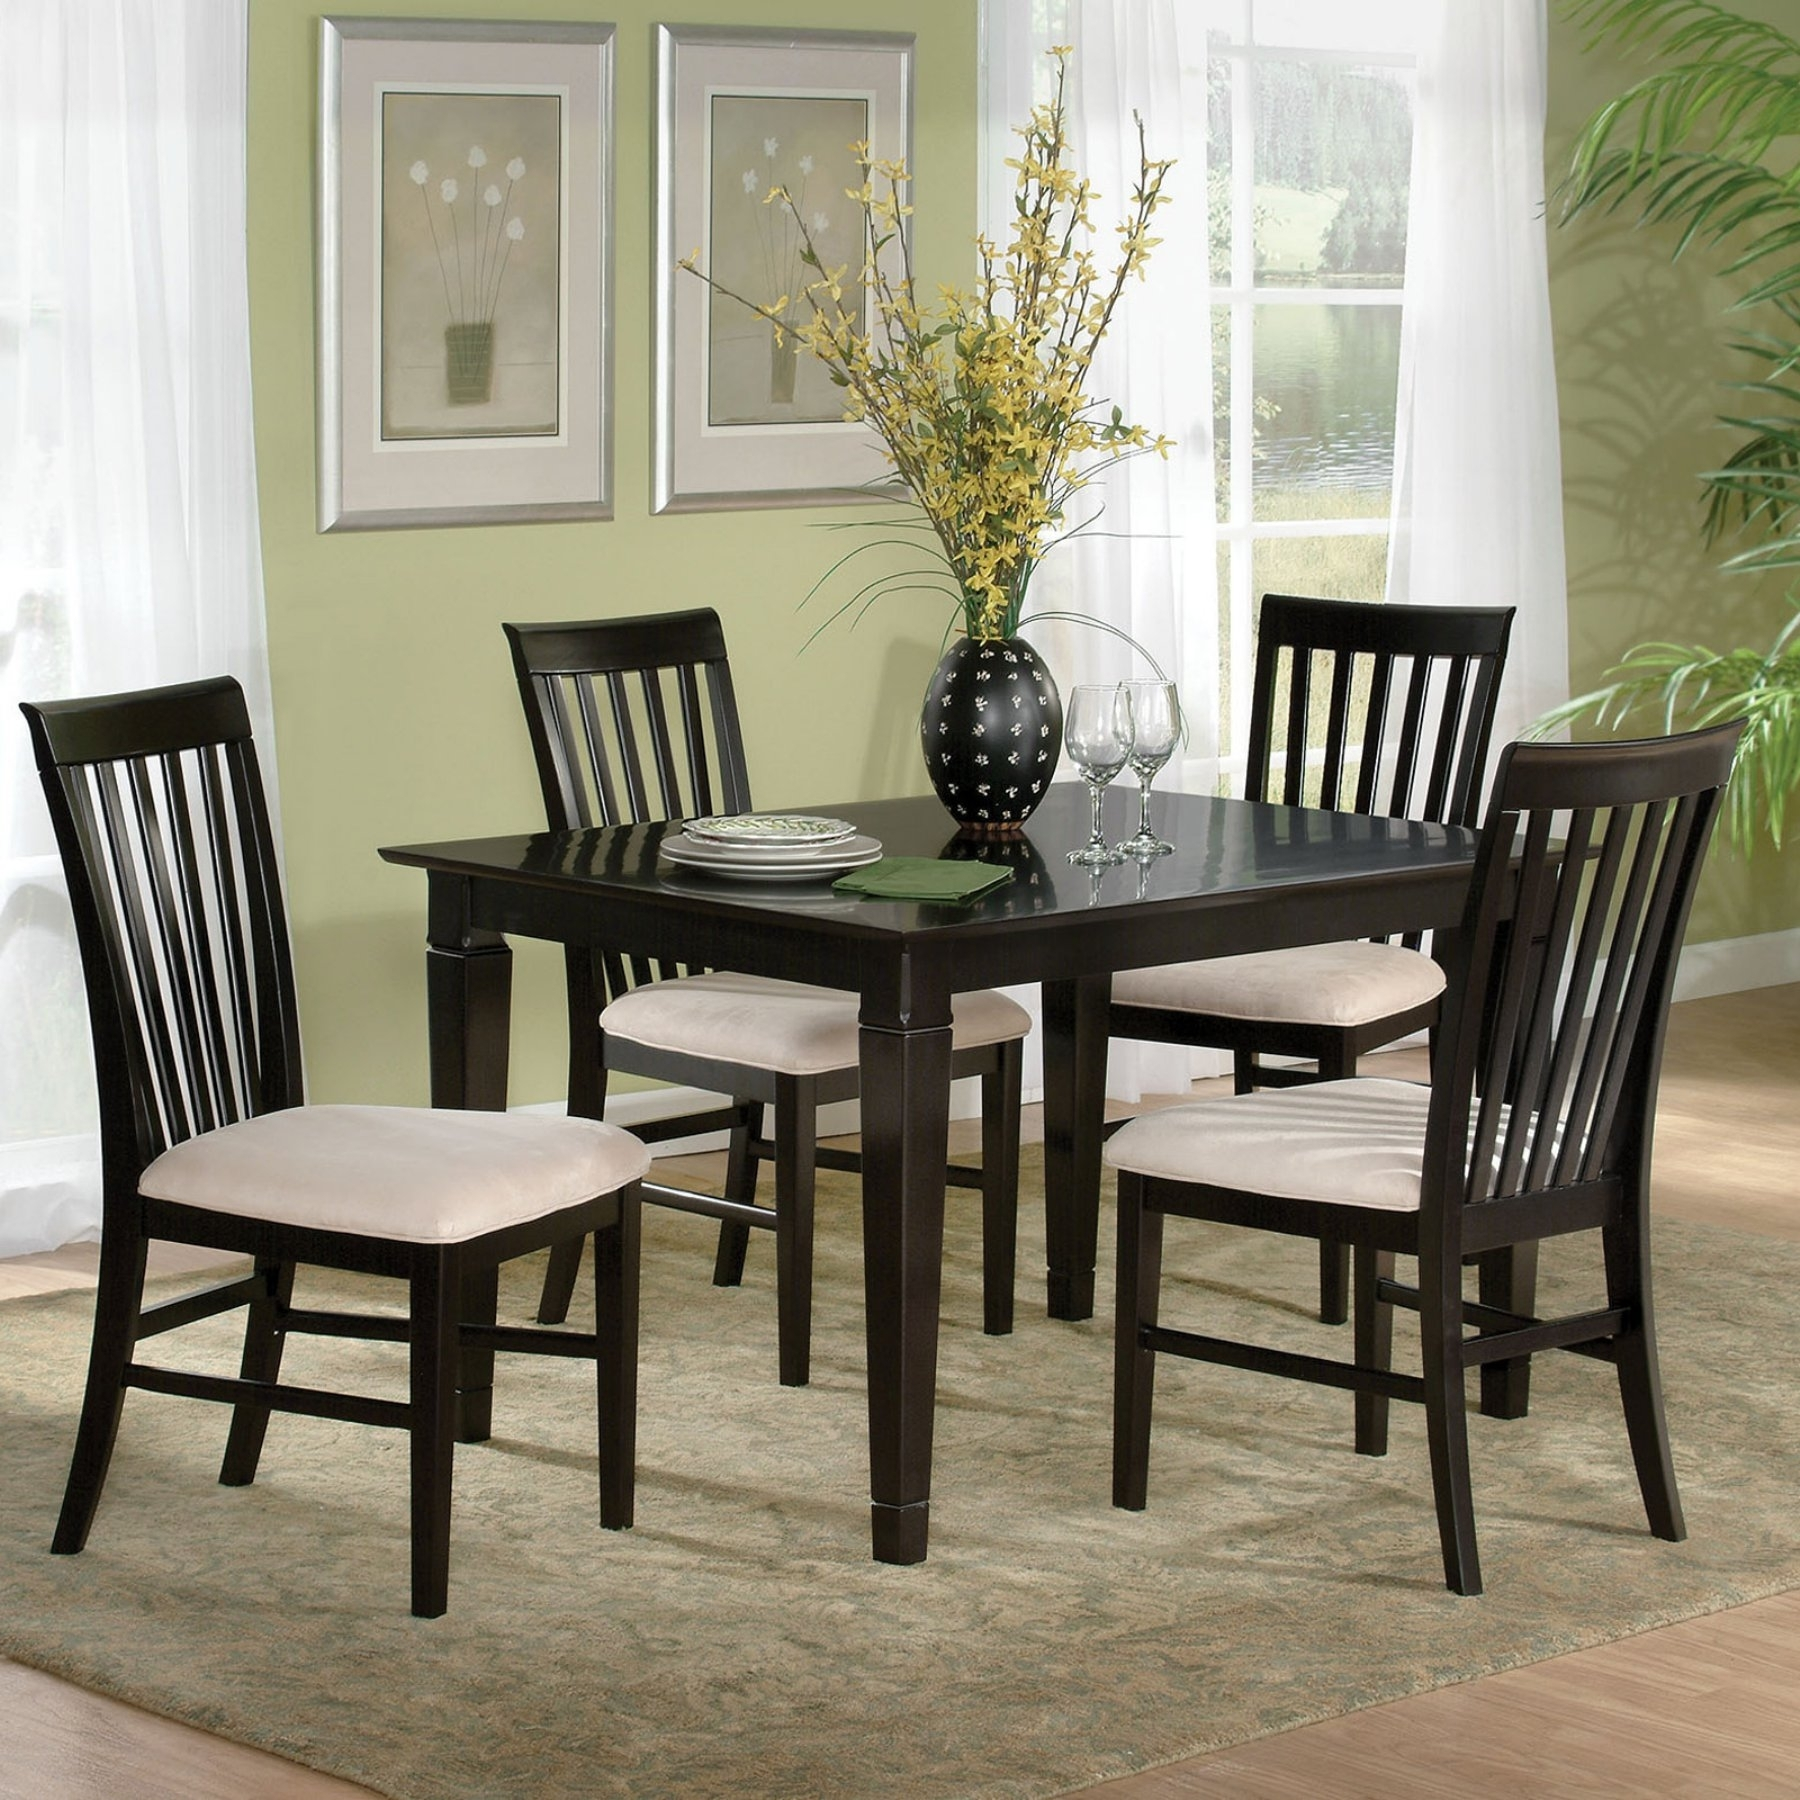 Atlantic Furniture Montego Bay 5 Piece Espresso Dining Table Set In Recent Laurent 5 Piece Round Dining Sets With Wood Chairs (View 12 of 20)